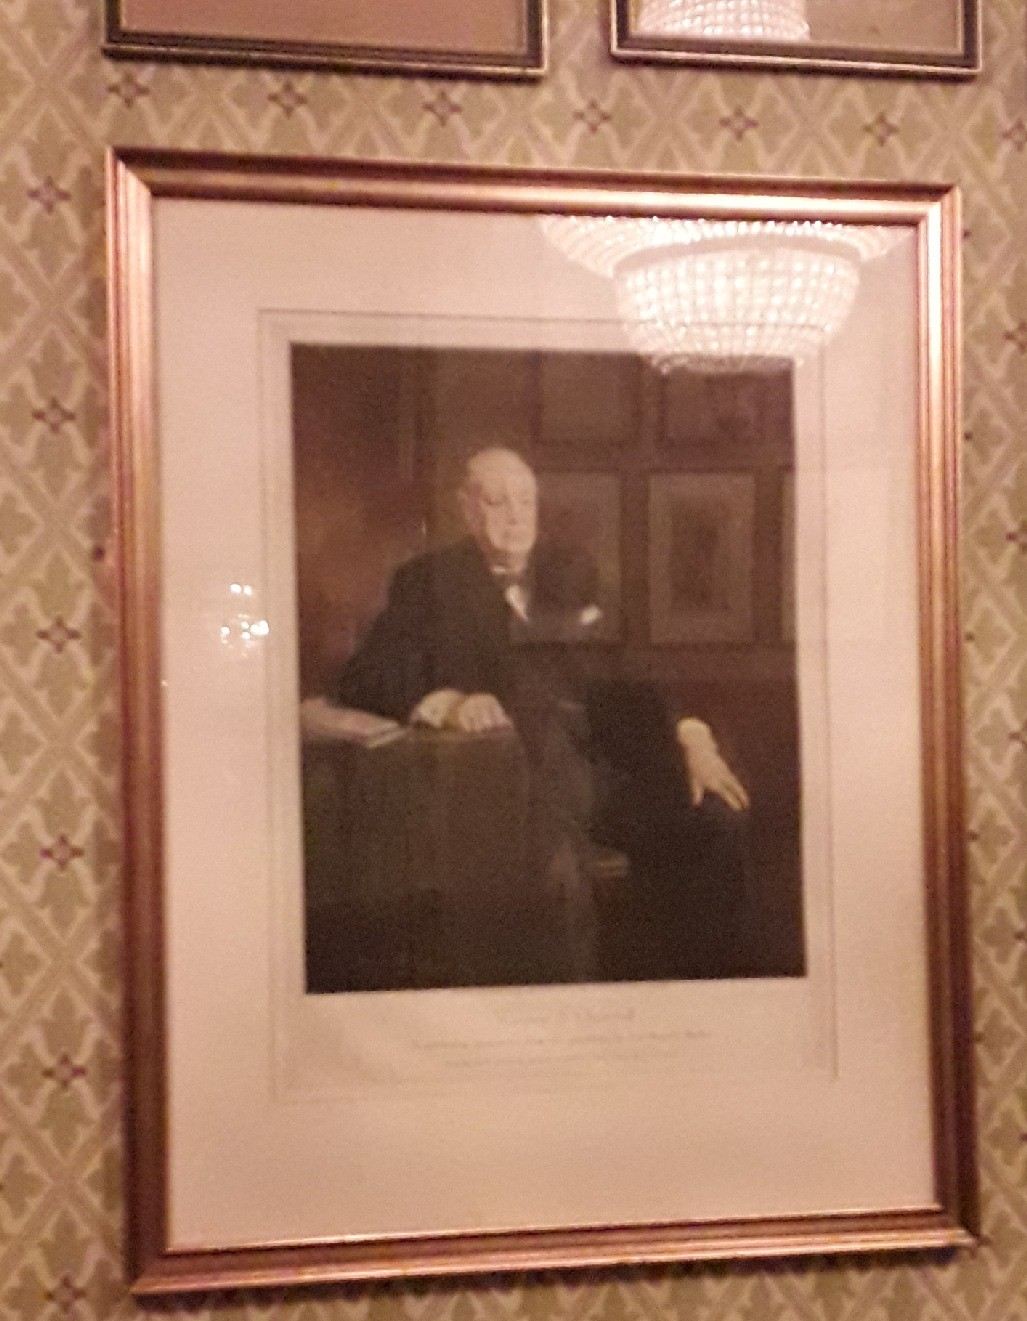 In the Venue hands a portrait of Winston Churchill, a man whose enlightened image is finally being challenged, as evidence of